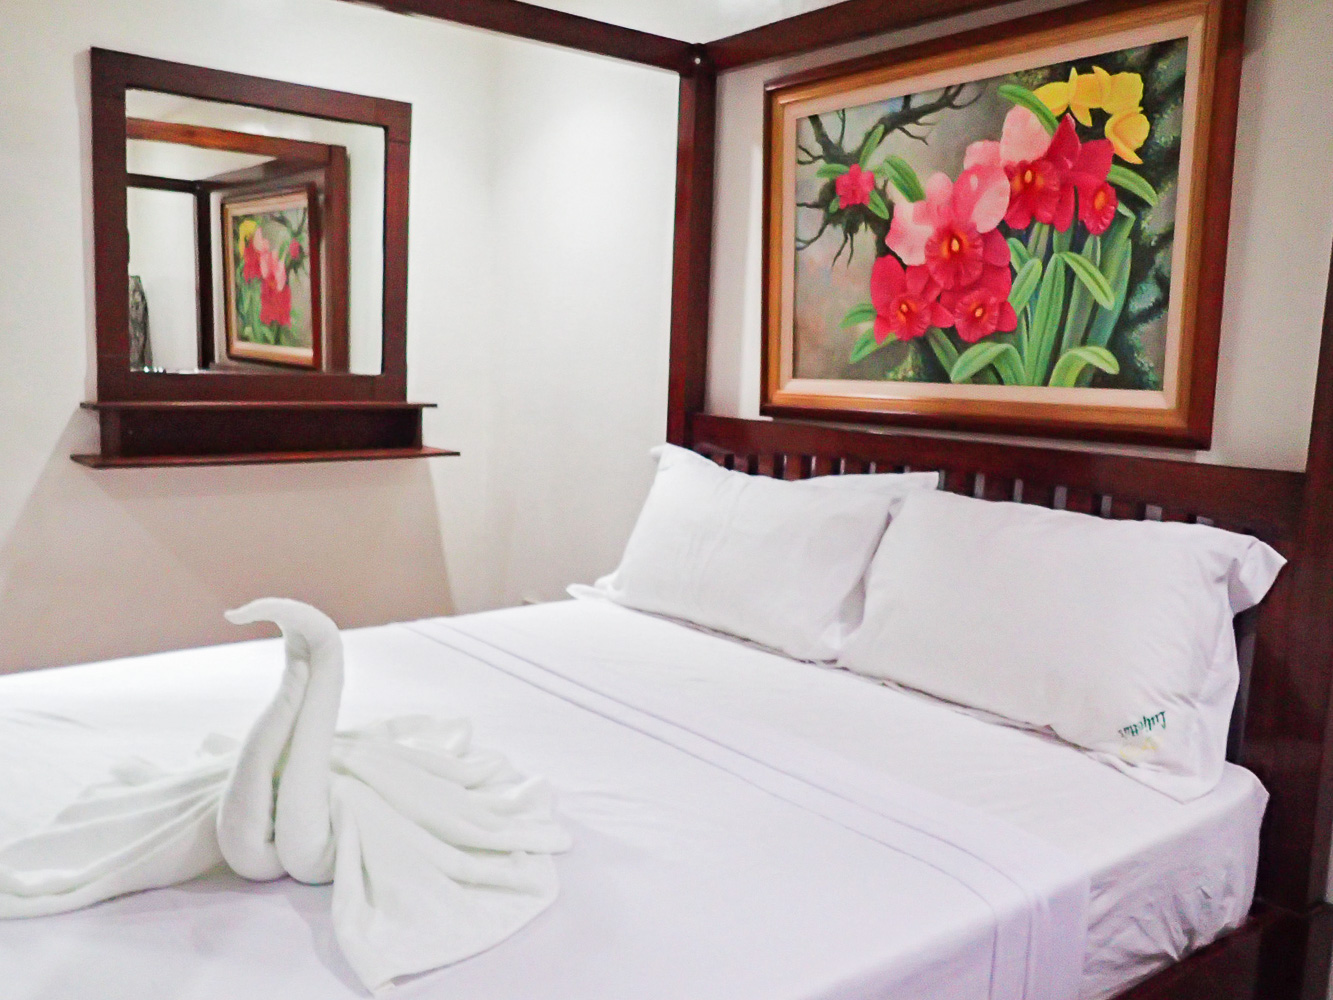 FOR OVERNIGHT STAYS. Luljettau0080's Bed and Breakfast has rooms like this for overnight spa guests.